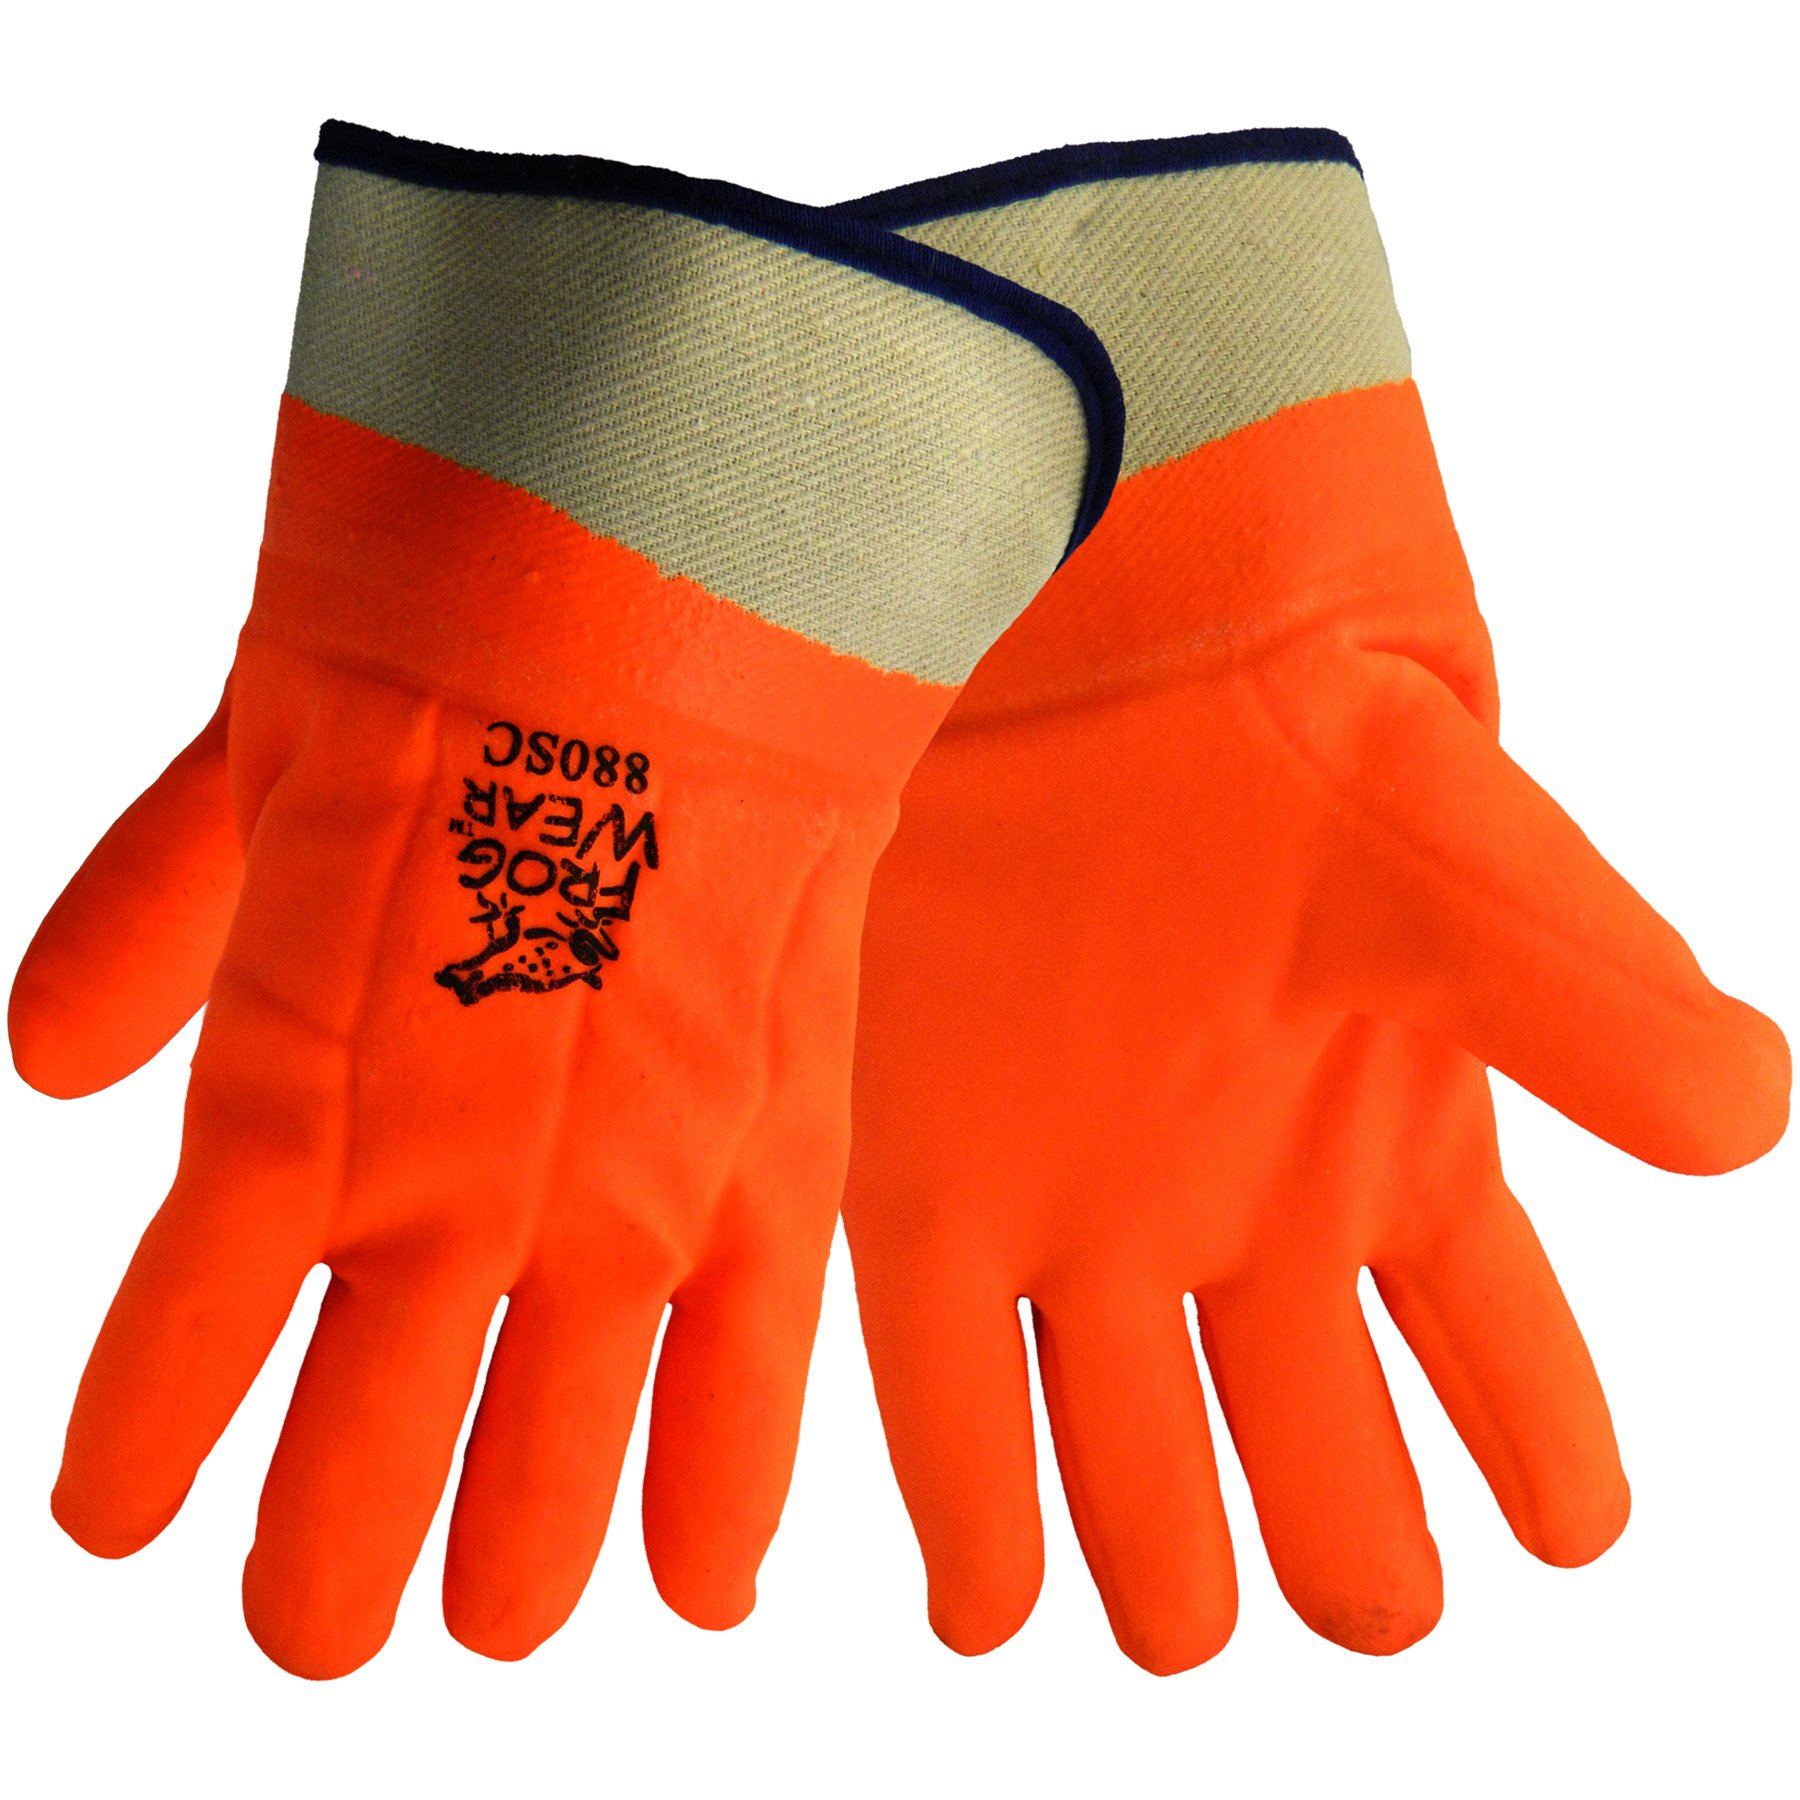 Global Glove 880SC FrogWear PVC Double Dipped High Visibility Glove with Safety Cuff, Chemical Resistent, 1 Size, Orange (Case of 72)